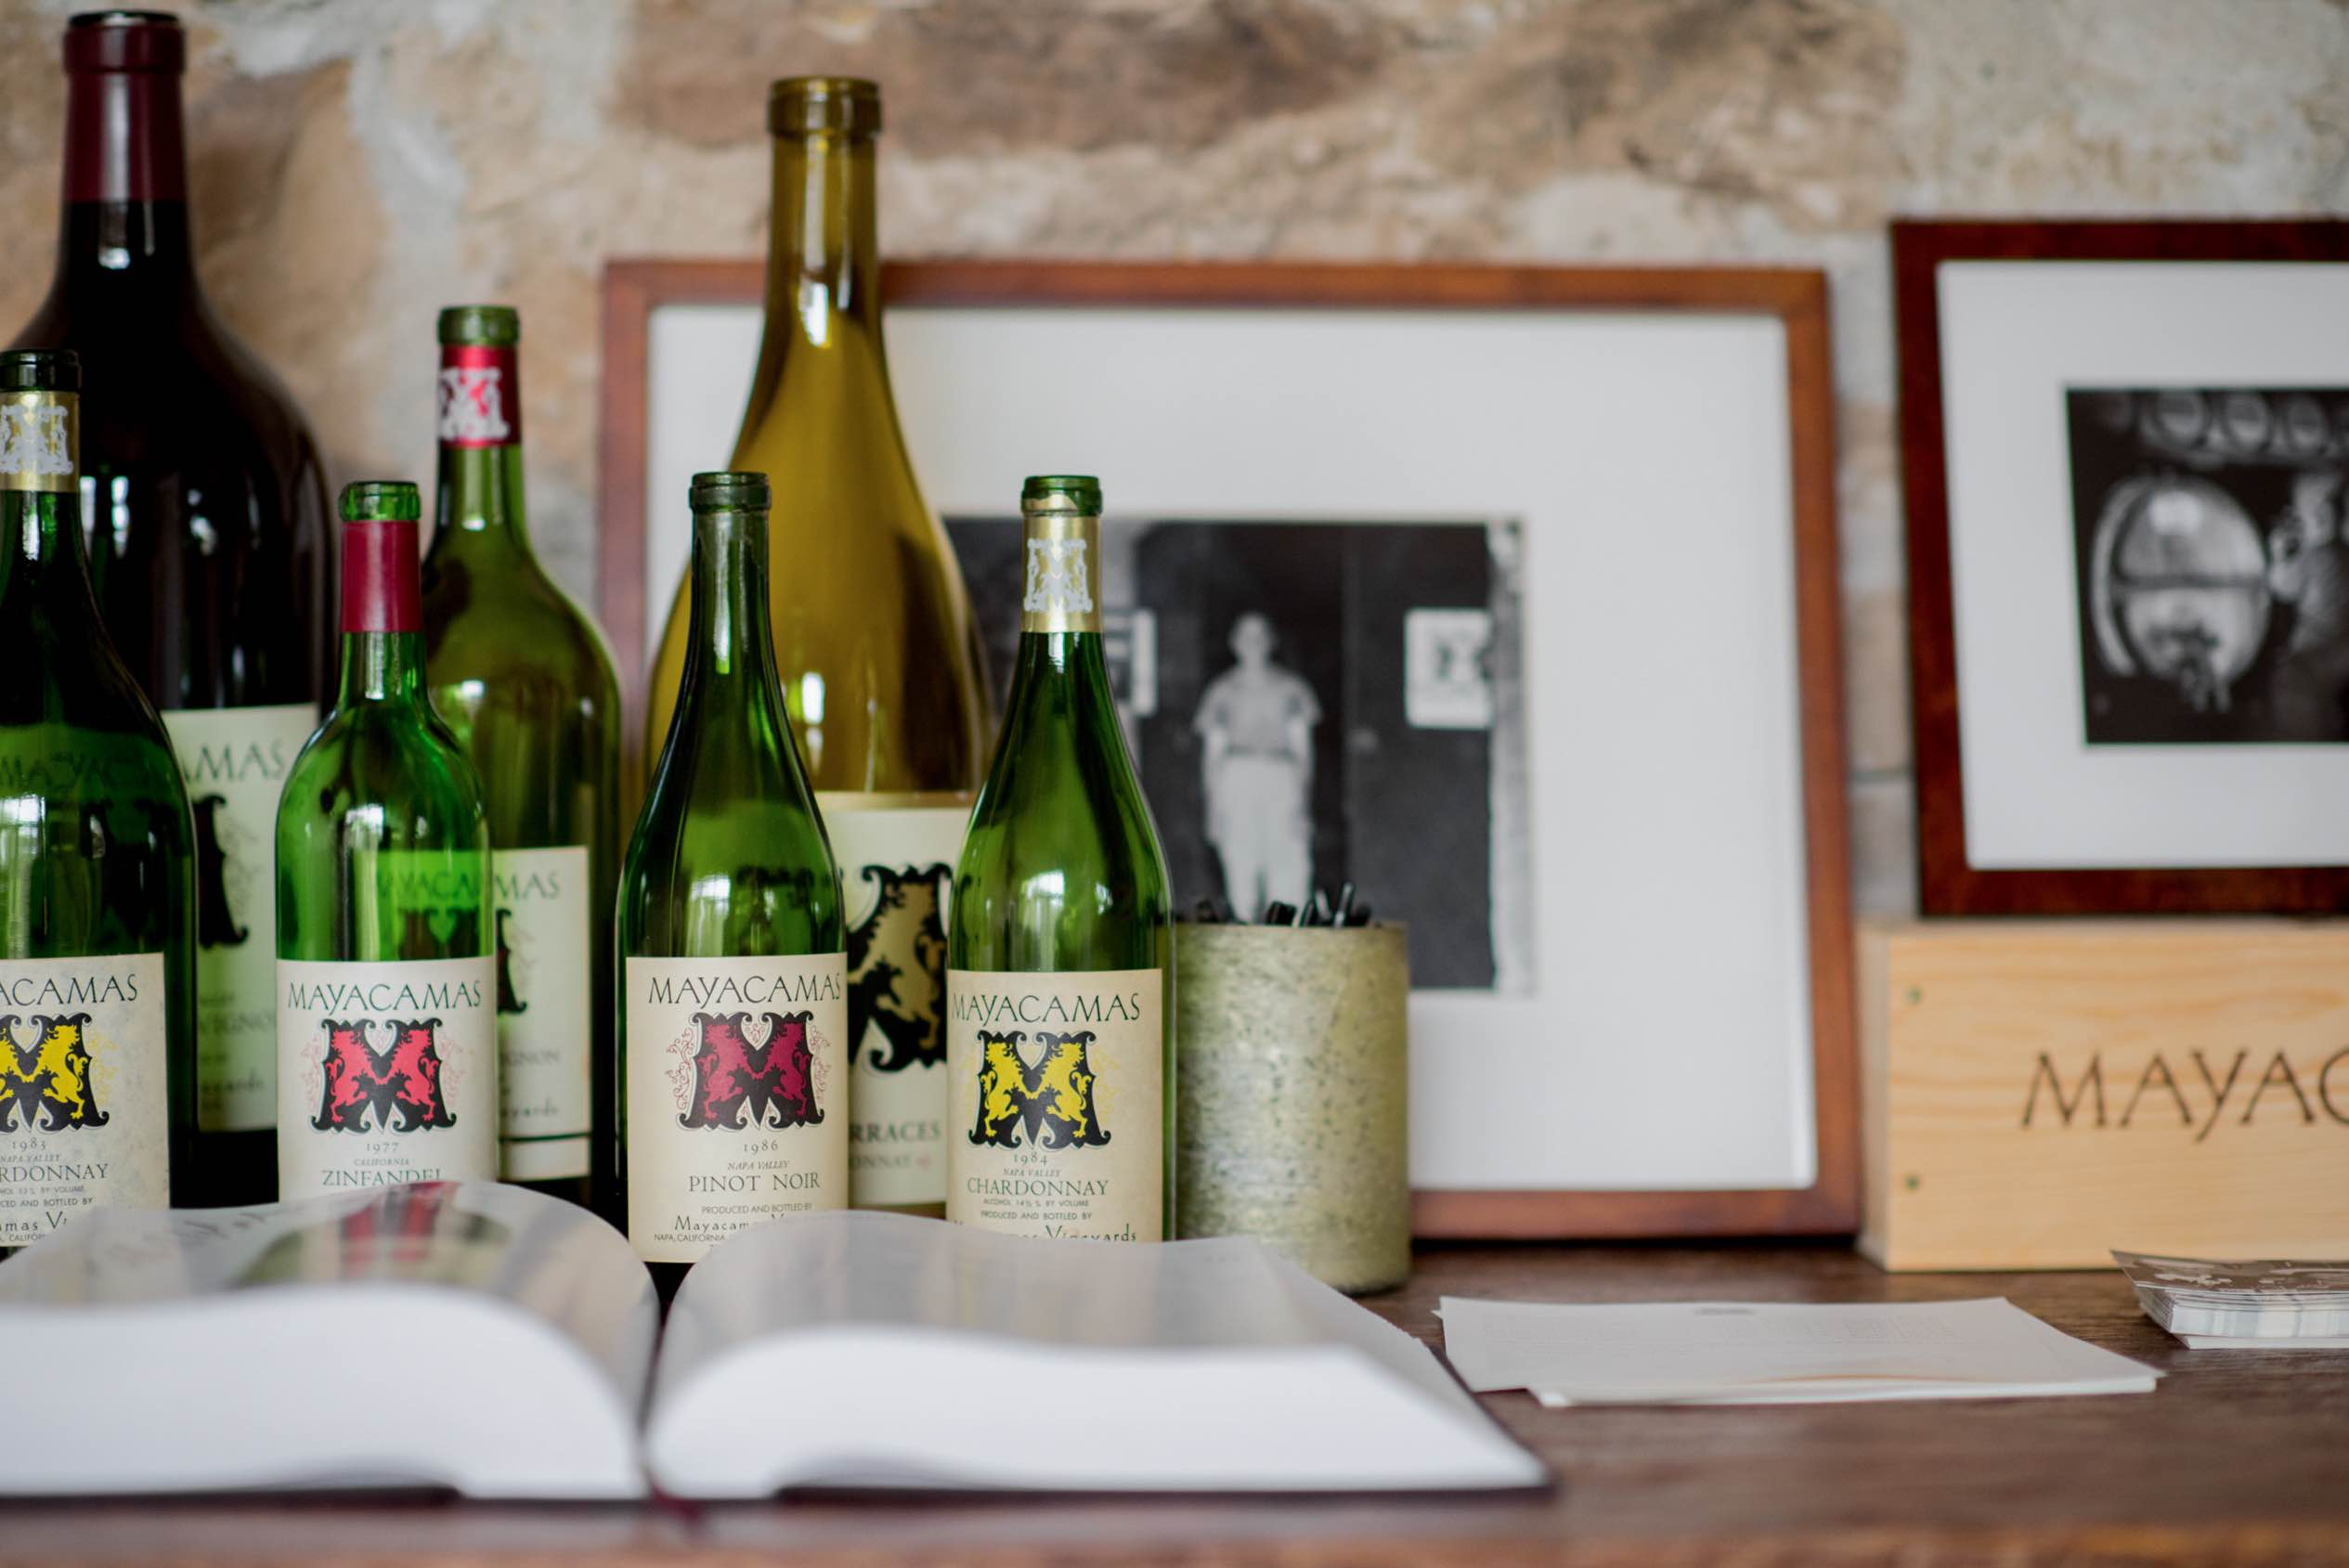 Bottles Past & Present, 2018 - Mayacamas Vineyards